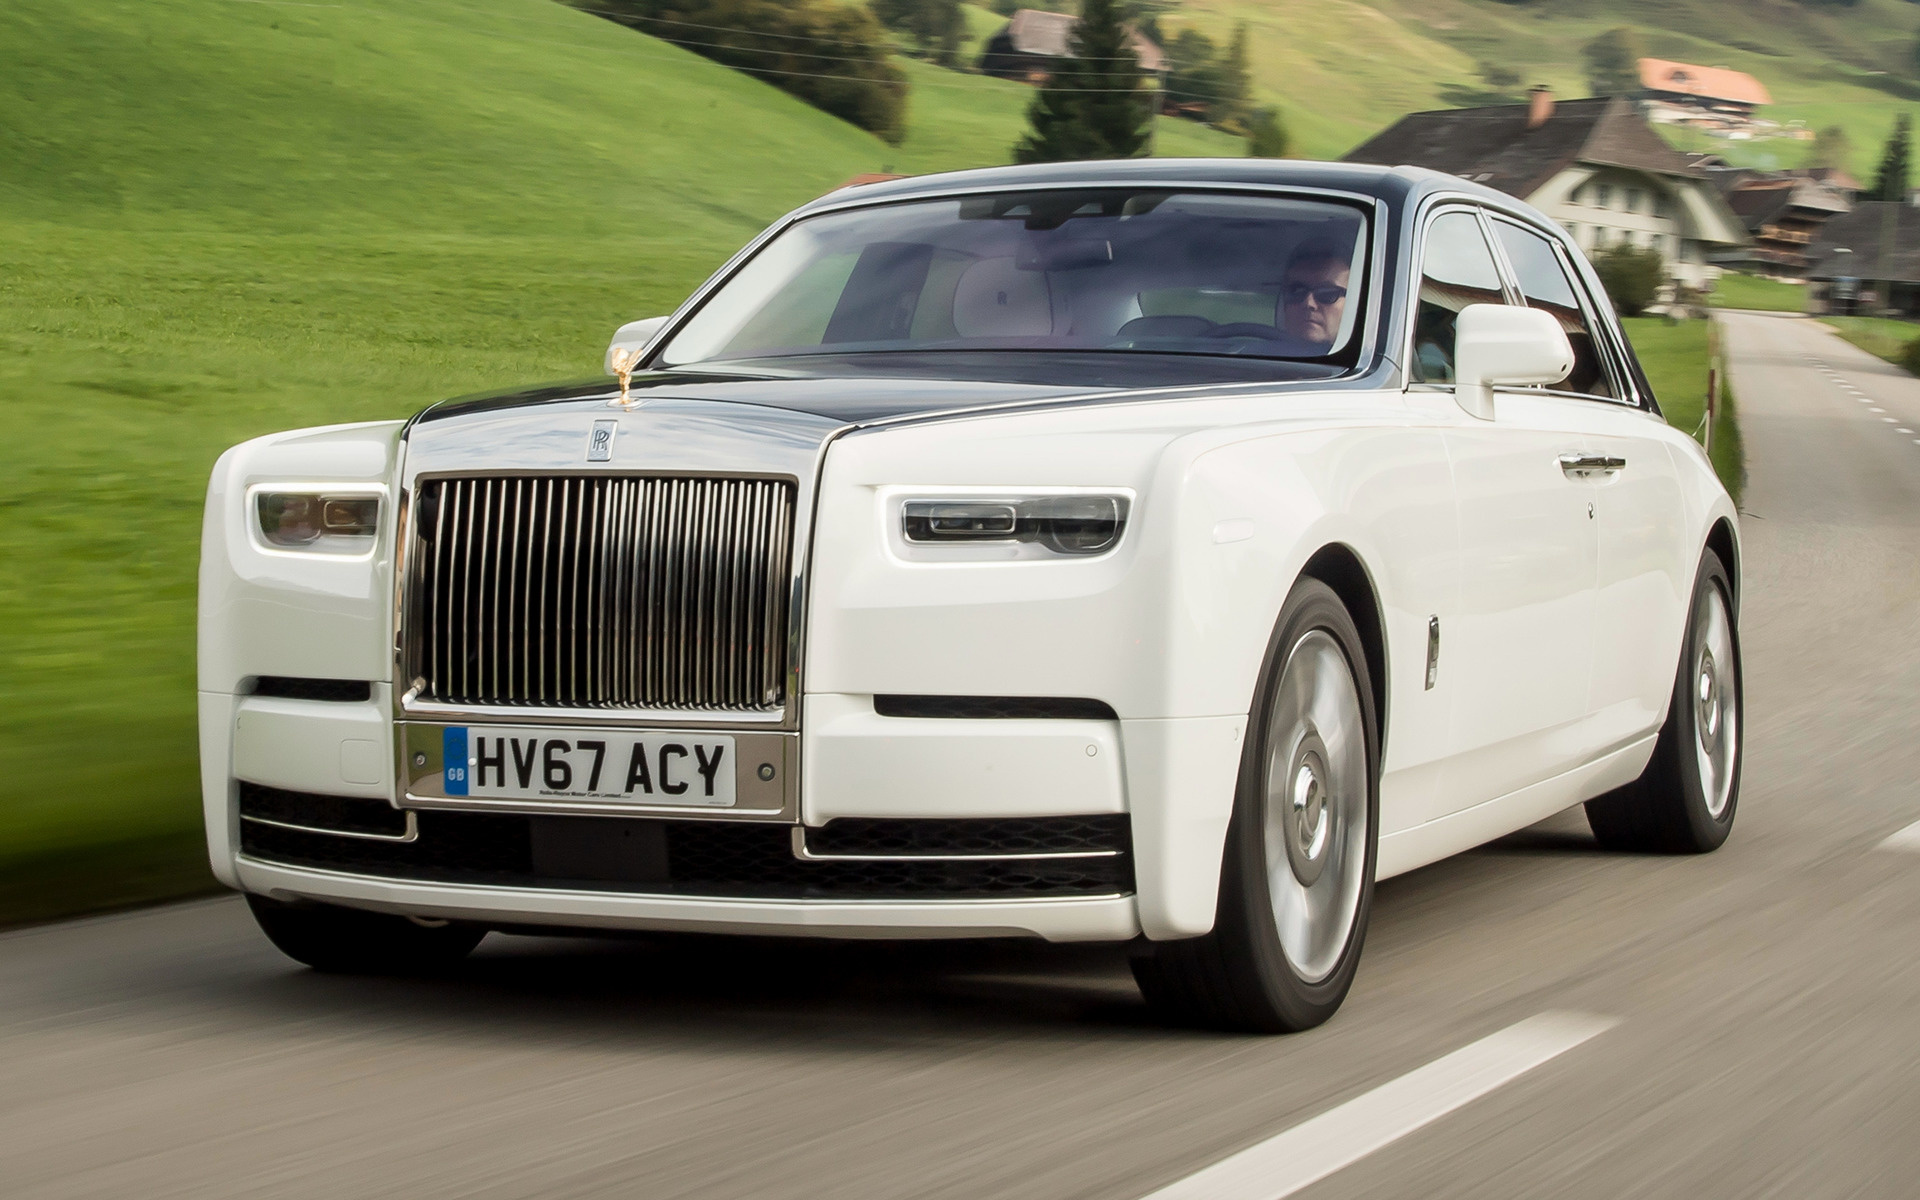 2017 Rolls Royce Phantom Wallpapers And Hd Images Car